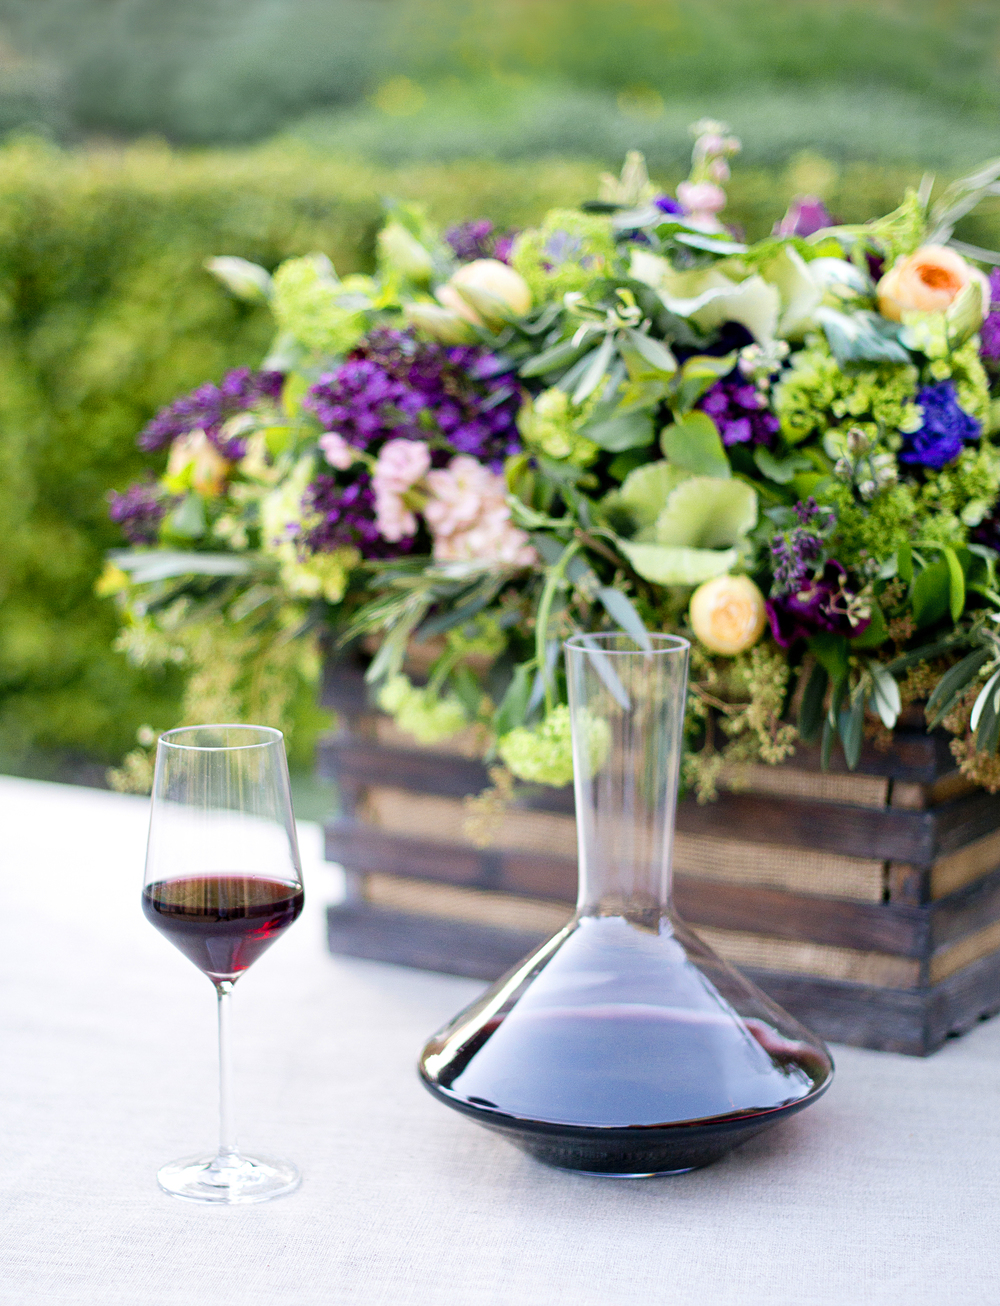 A Garden Wine Tasting party! I love tasting wines from Napa, California and comparing the various differences between wine makers.